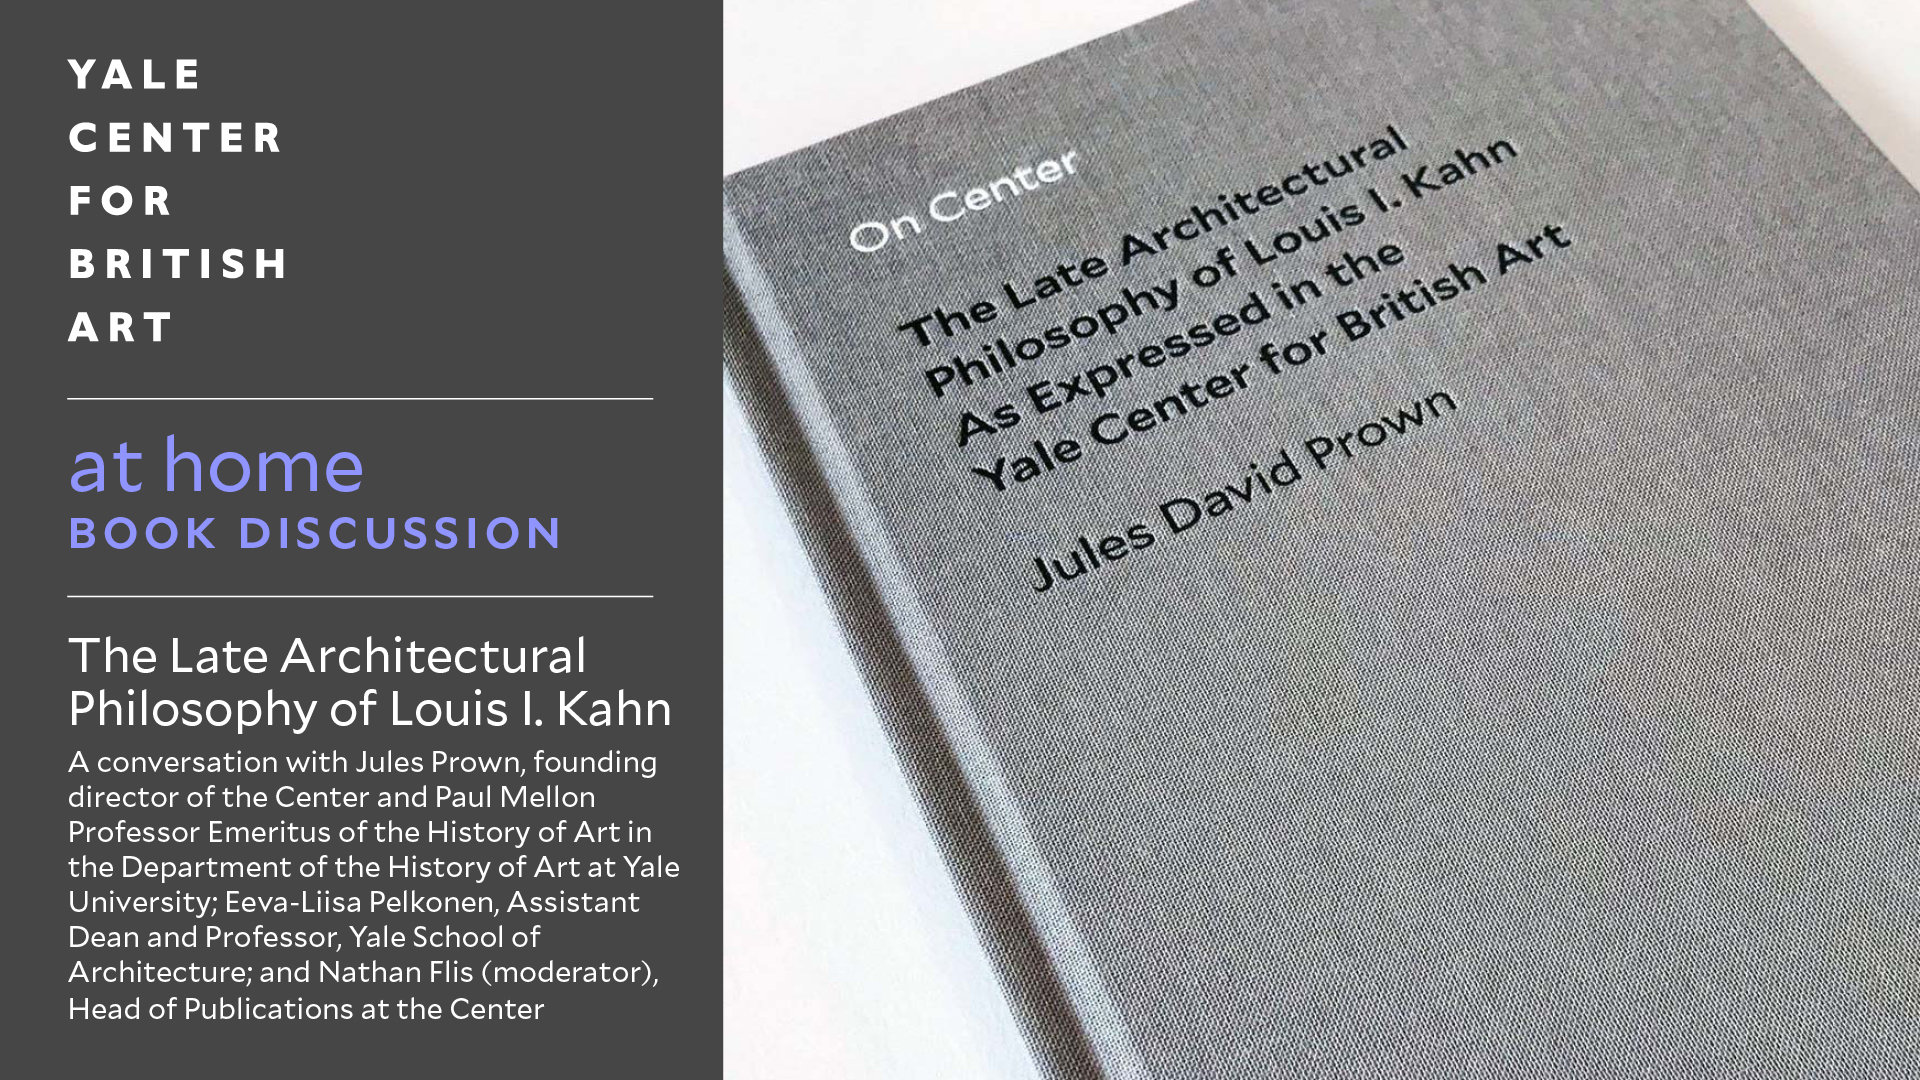 Book cover, On Center: The Late Architectural Philosophy of Louis I. Kahn as Expressed in the Yale Center for British Art